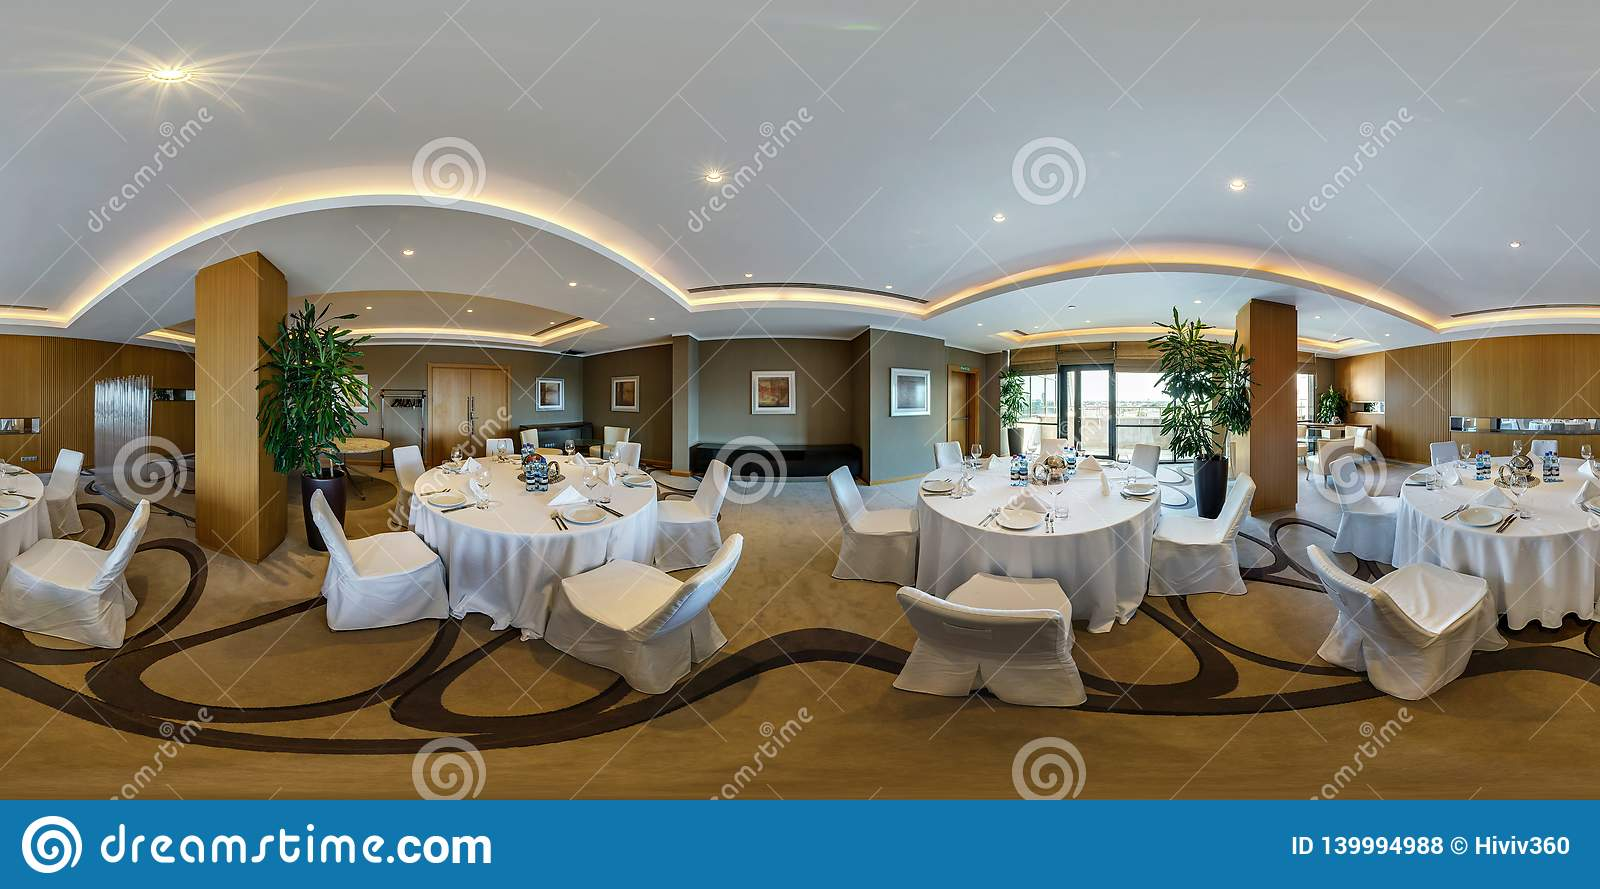 Minsk Belarus August 2017 Full Panorama 360 Angle View Seamless Inside Interior Of Large Banquet Hall In Modern Hotel In Editorial Stock Photo Image Of Chandelier Light 139994988